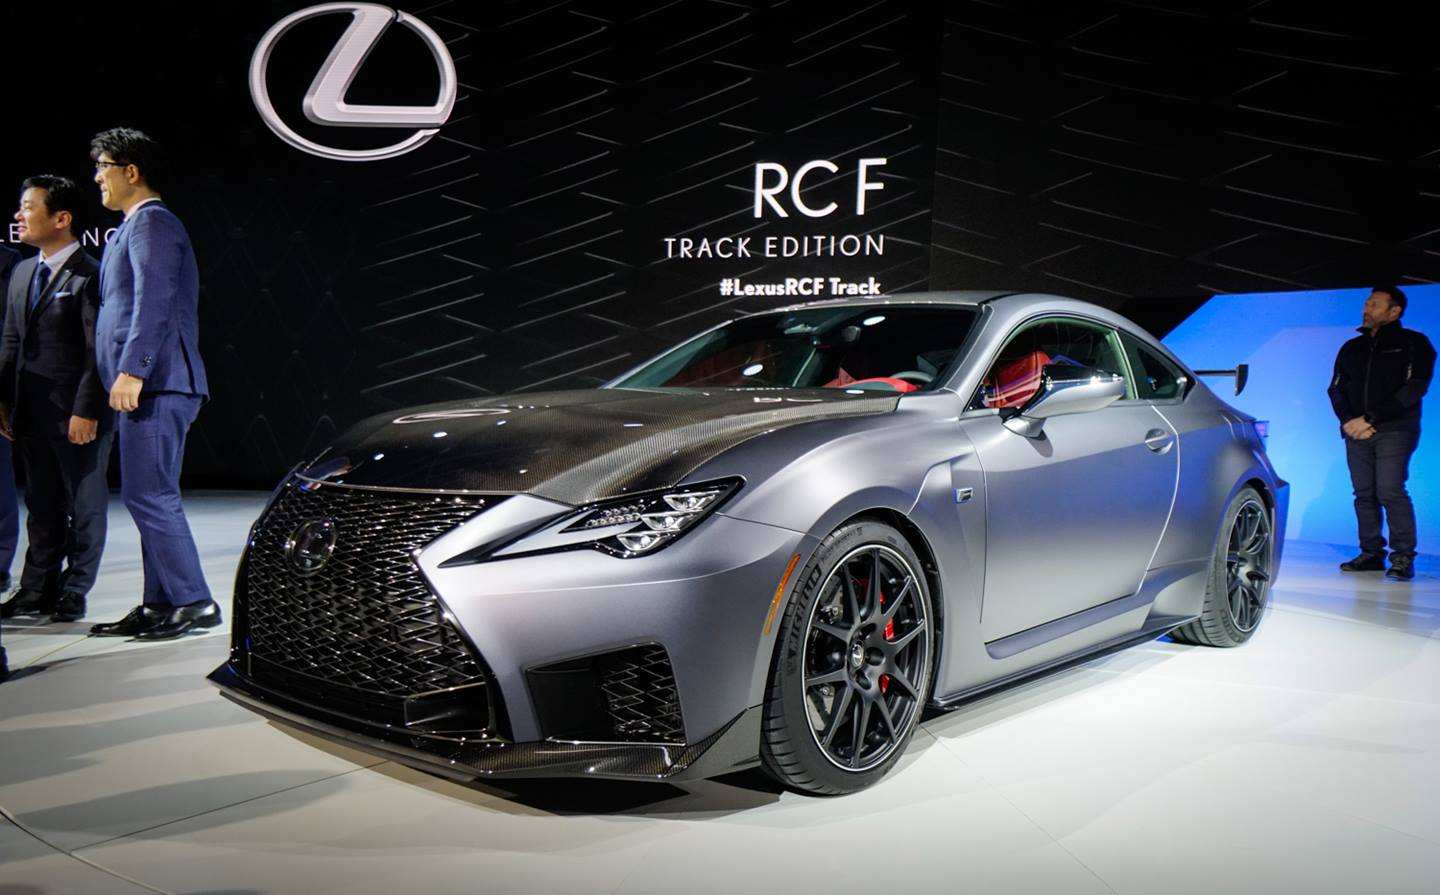 97 Concept of Are The 2020 Lexus Out Yet Pictures by Are The 2020 Lexus Out Yet